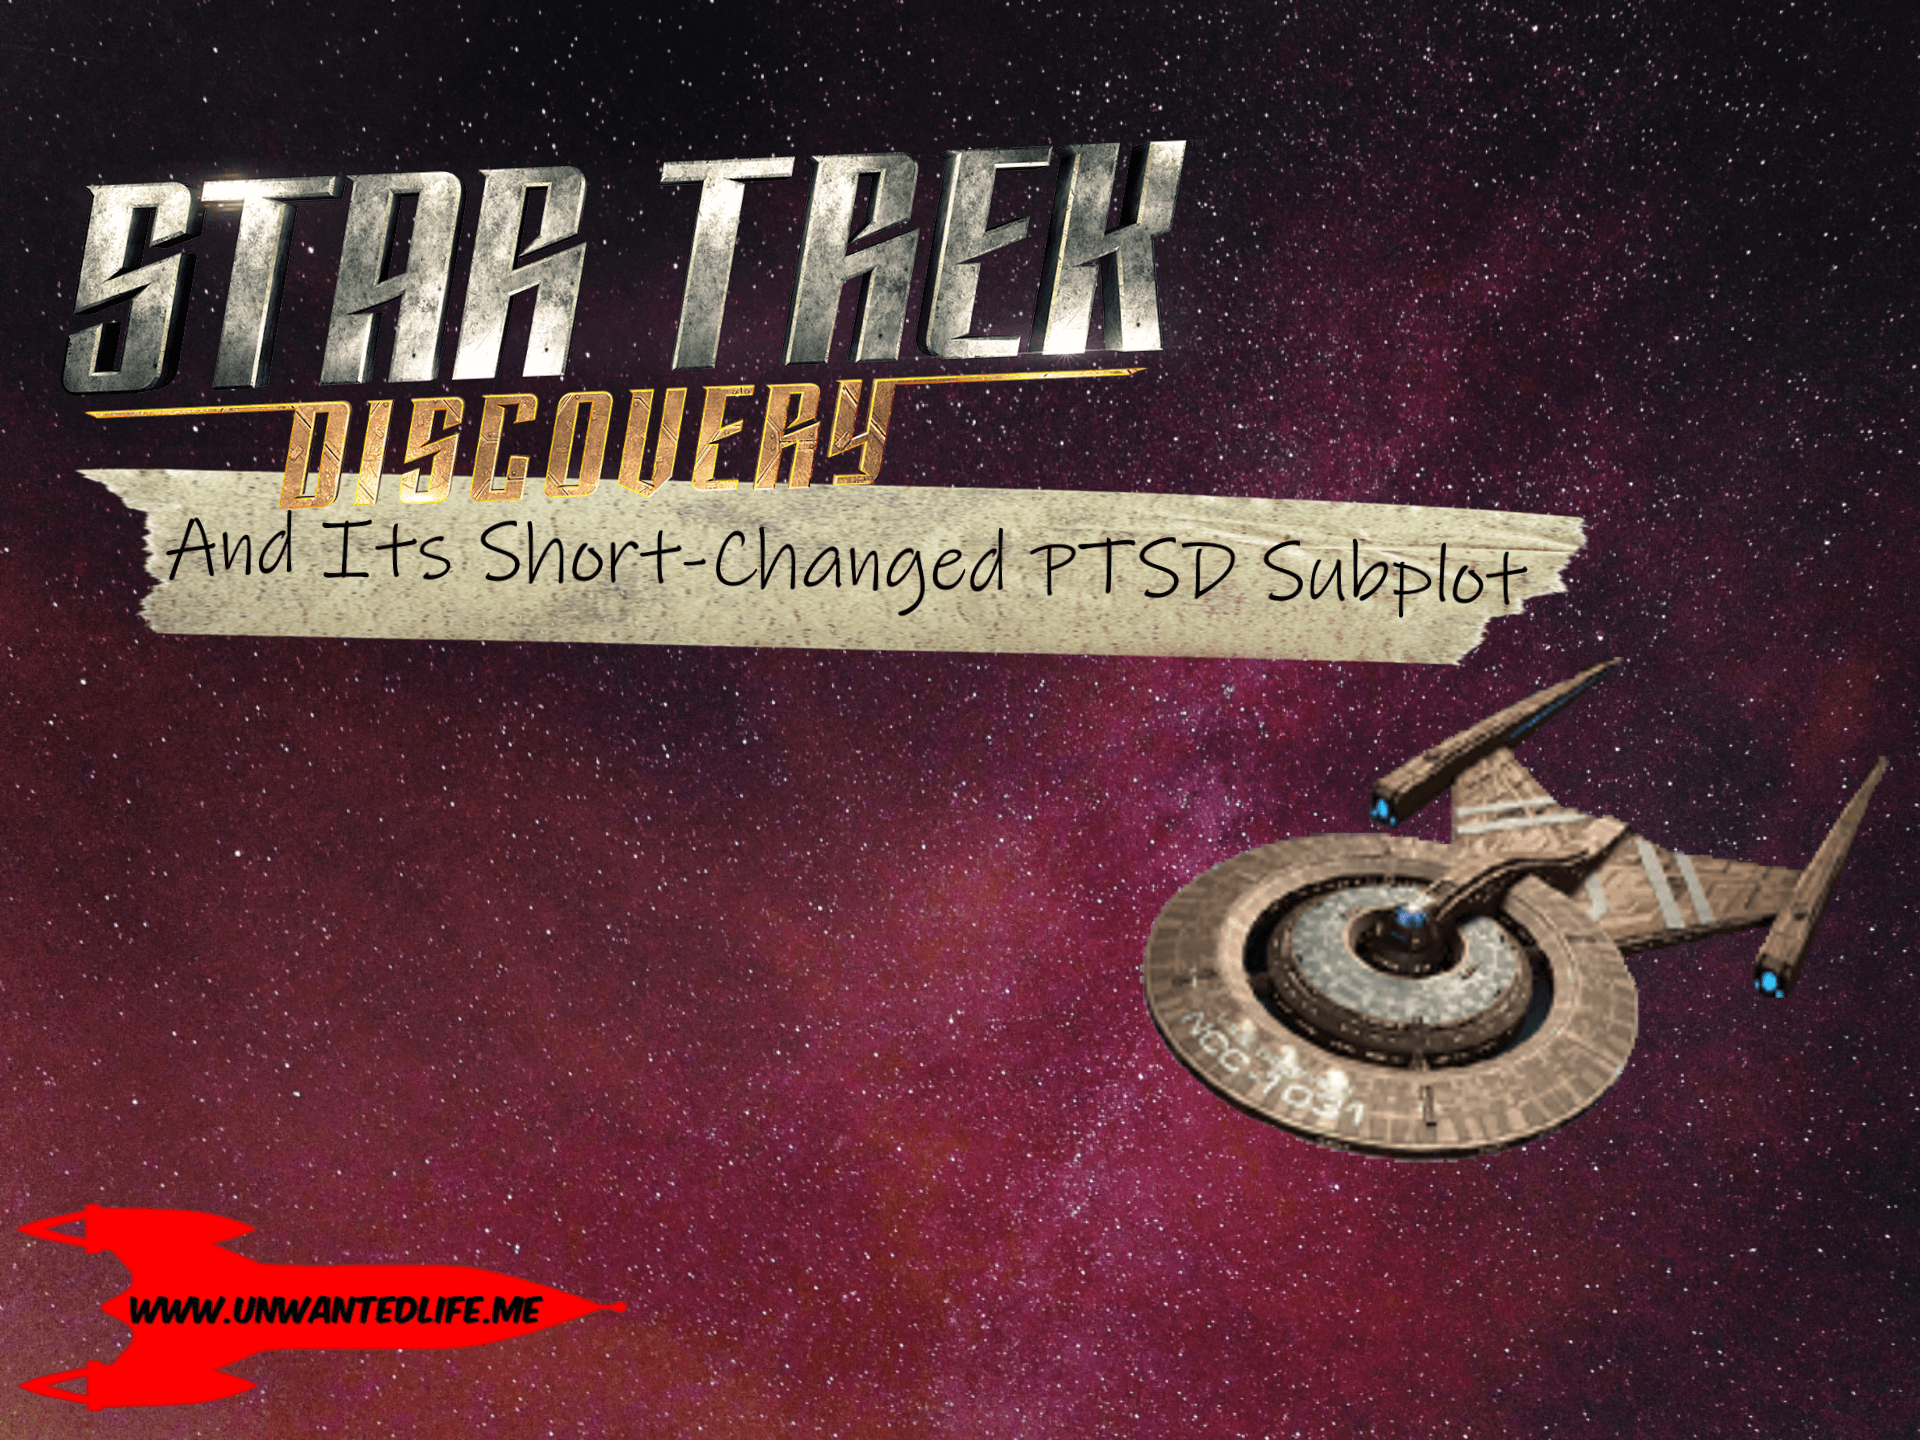 A picture of the Star Fleet ship the SS Discovery on an outer space background with the article title -Star Trek: Discovery And Its Short-Changed PTSD Subplot - in the top left of the image